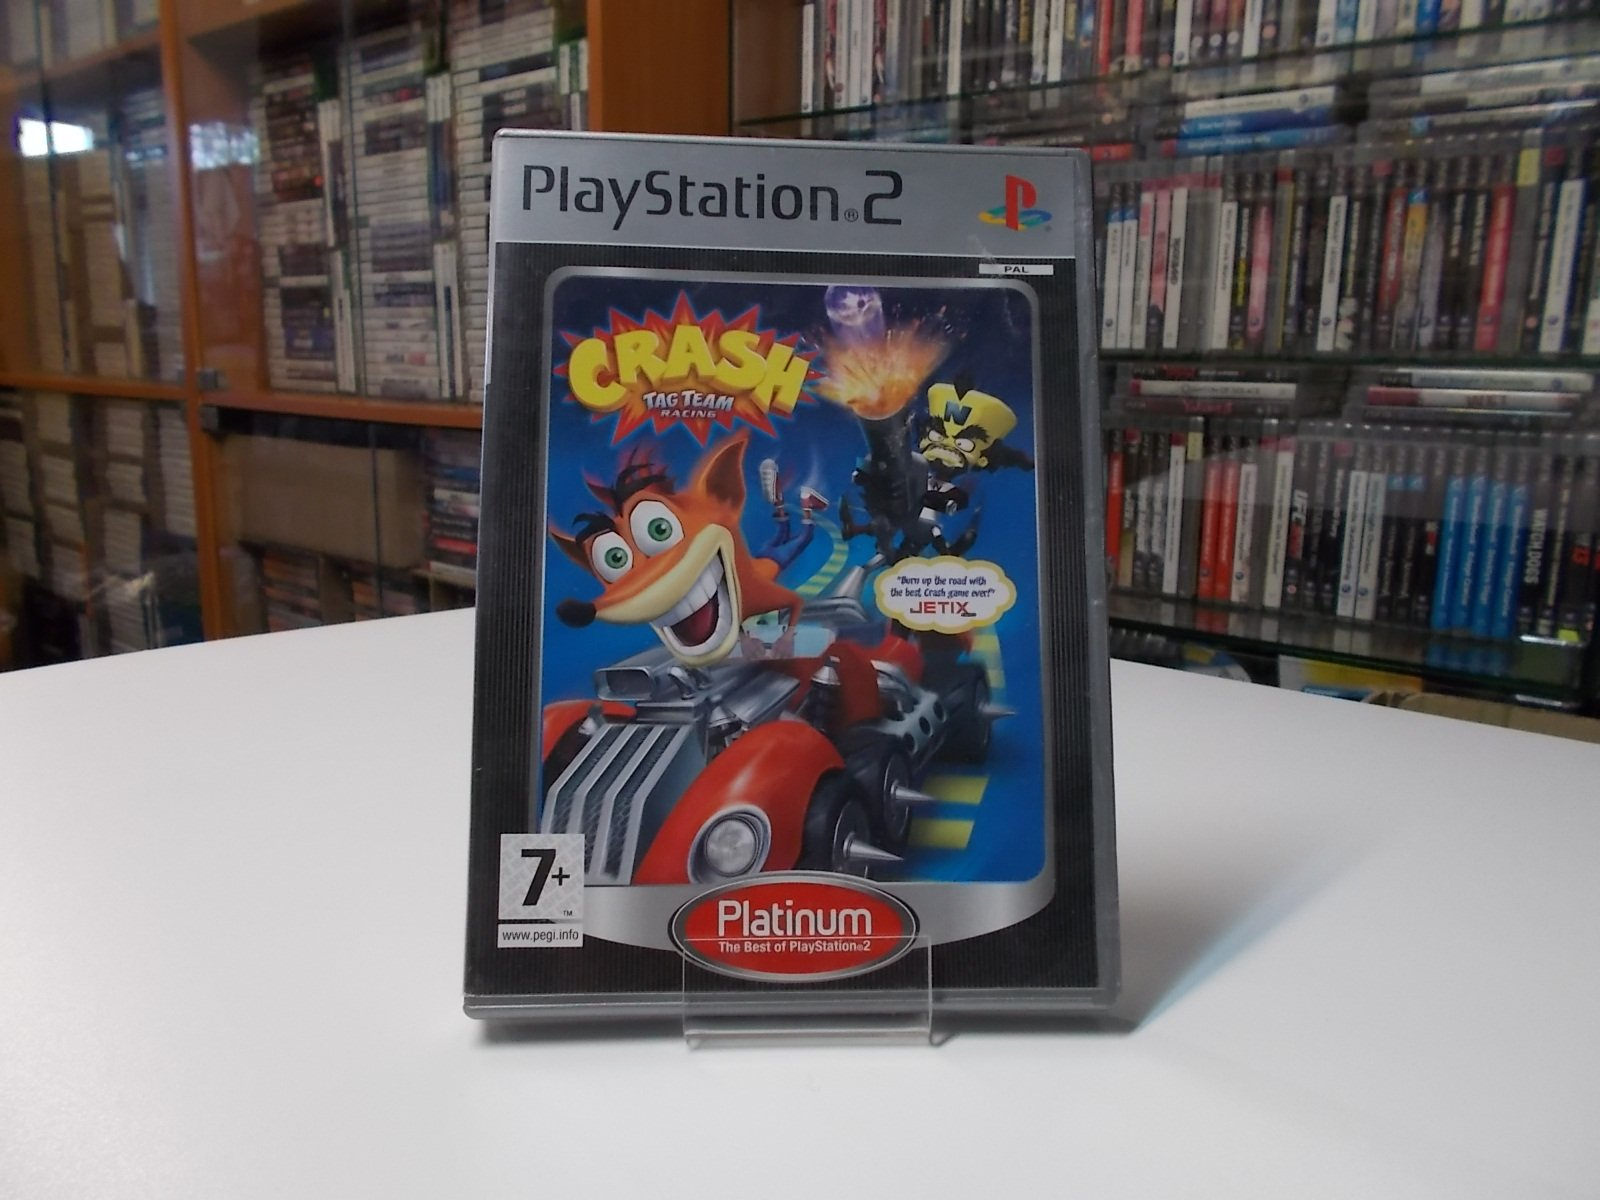 Crash Tag Team Racing - GRA Ps2 - Opole 0518